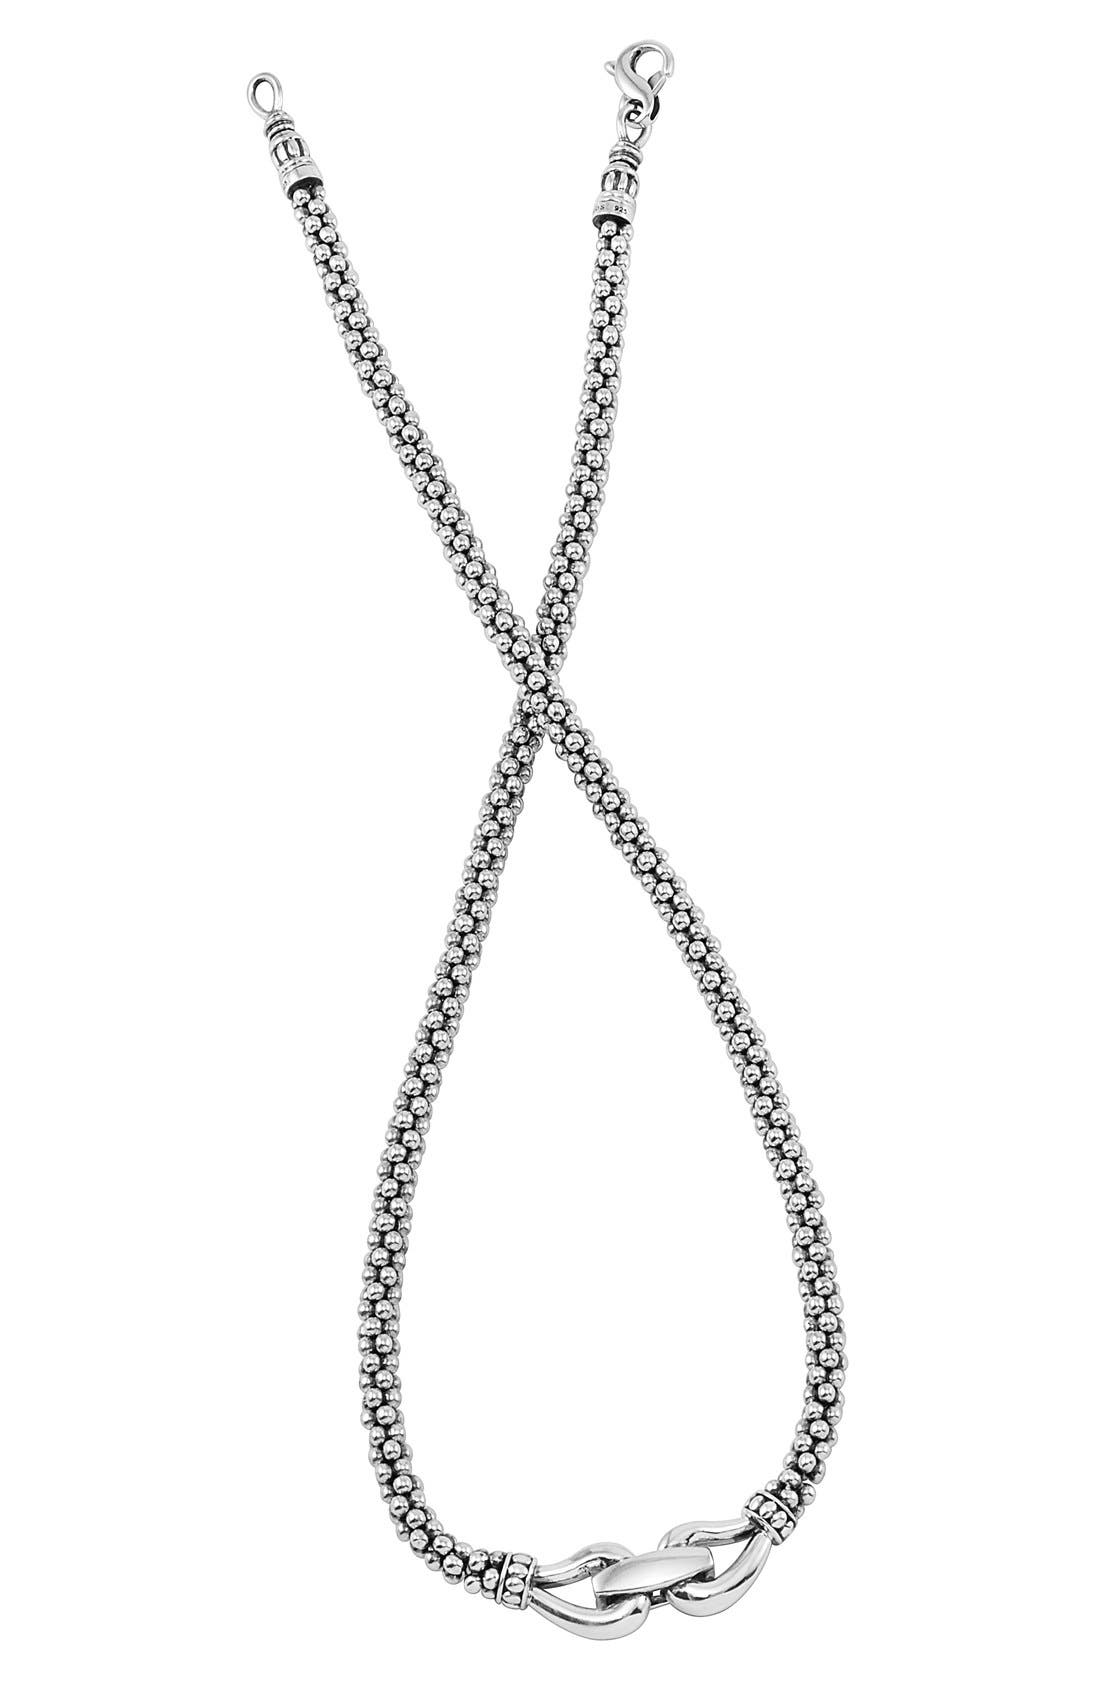 Main Image - LAGOS 'Derby' Buckle Rope Necklace